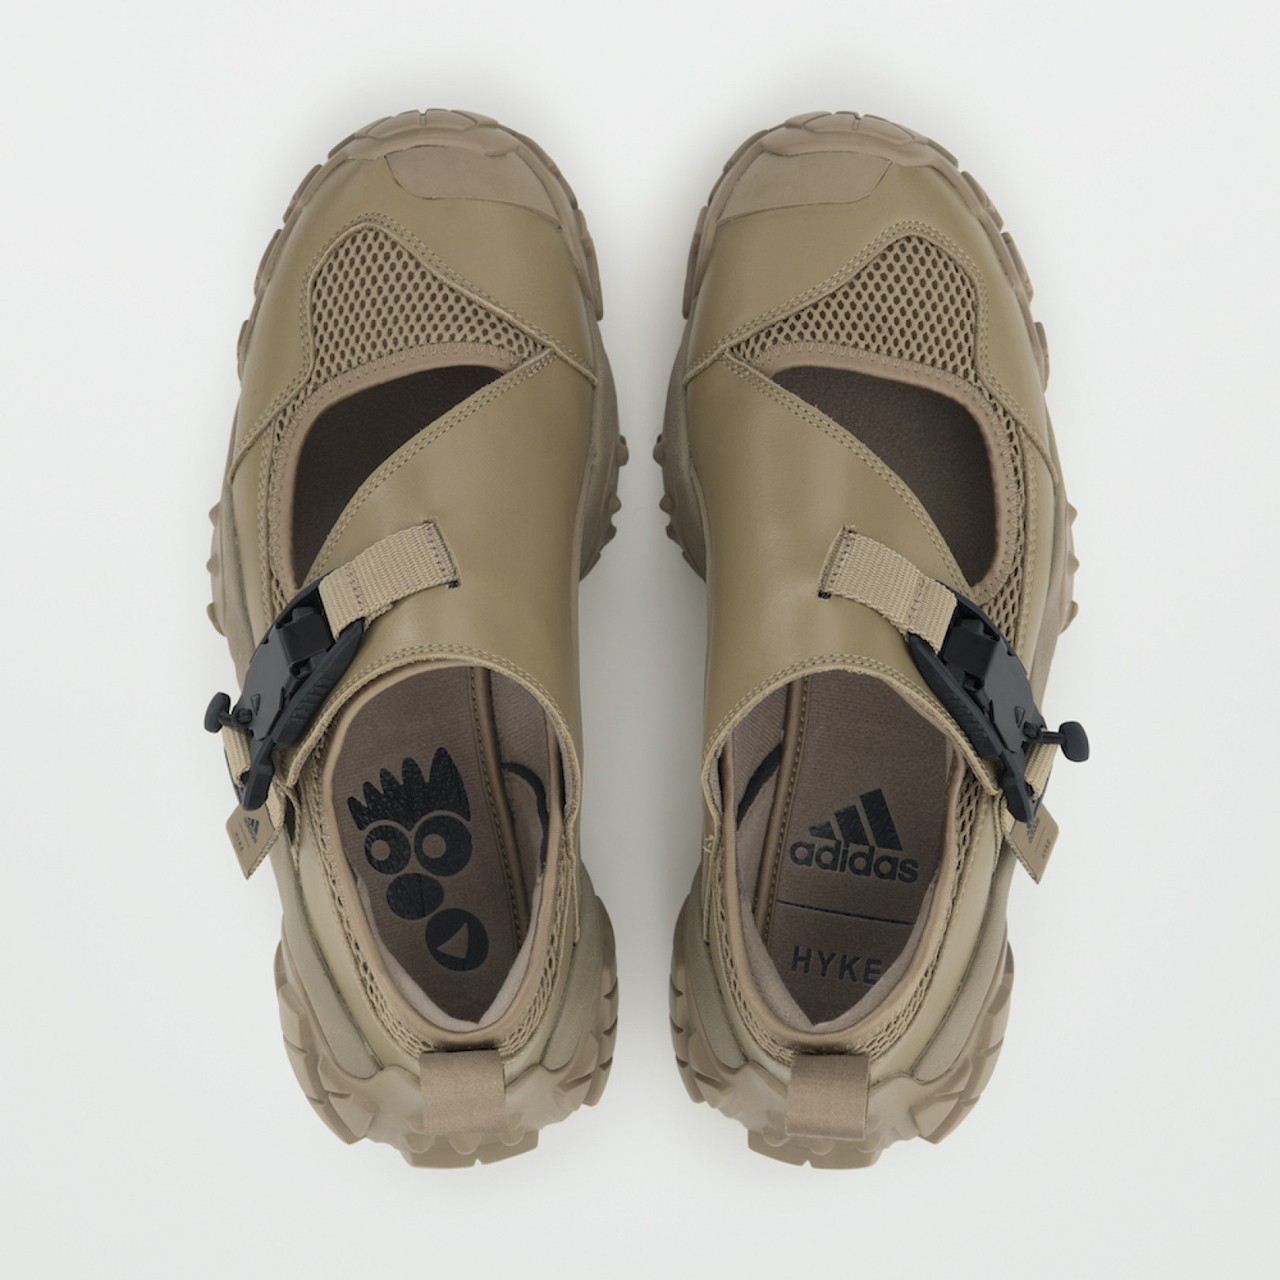 HYKE x adidas Originals Collaboration Fall/Winter 2020 Collection Sneaker FYW XTA Hiking Shoe Black Tan